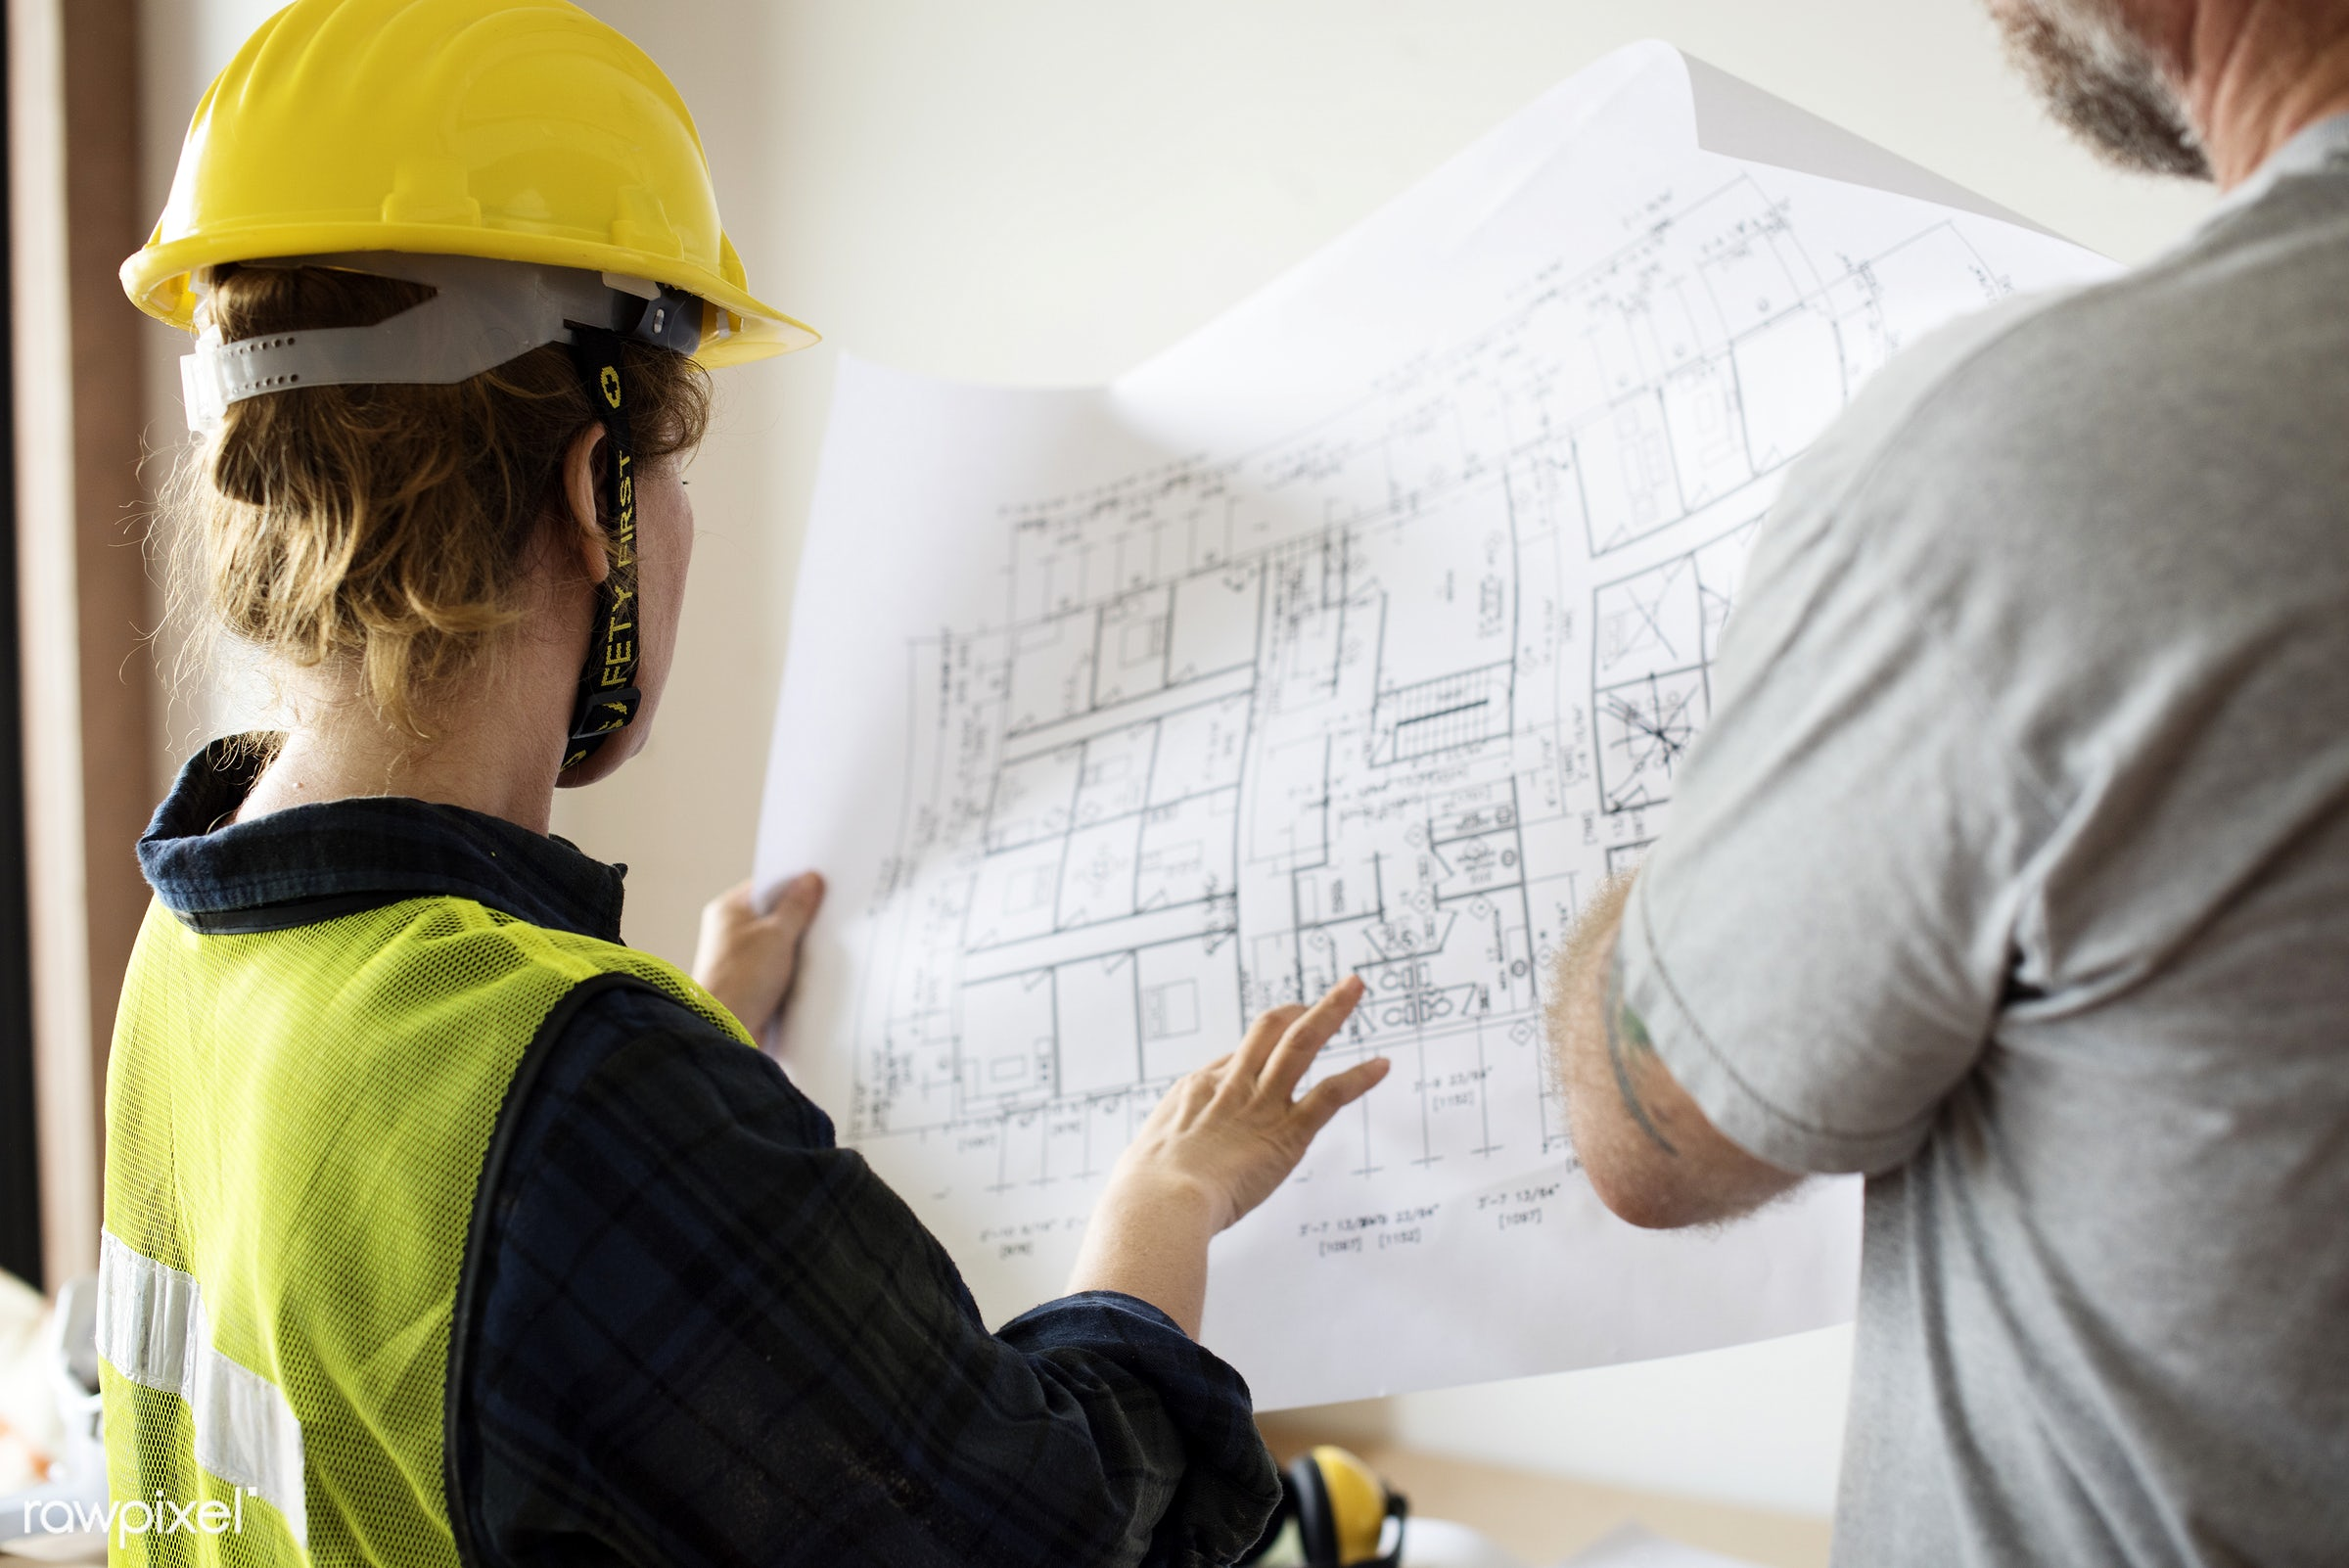 construction, architect, architectural, architecture, blueprint, build, design, document, draft, drafting, drawing, engineer...